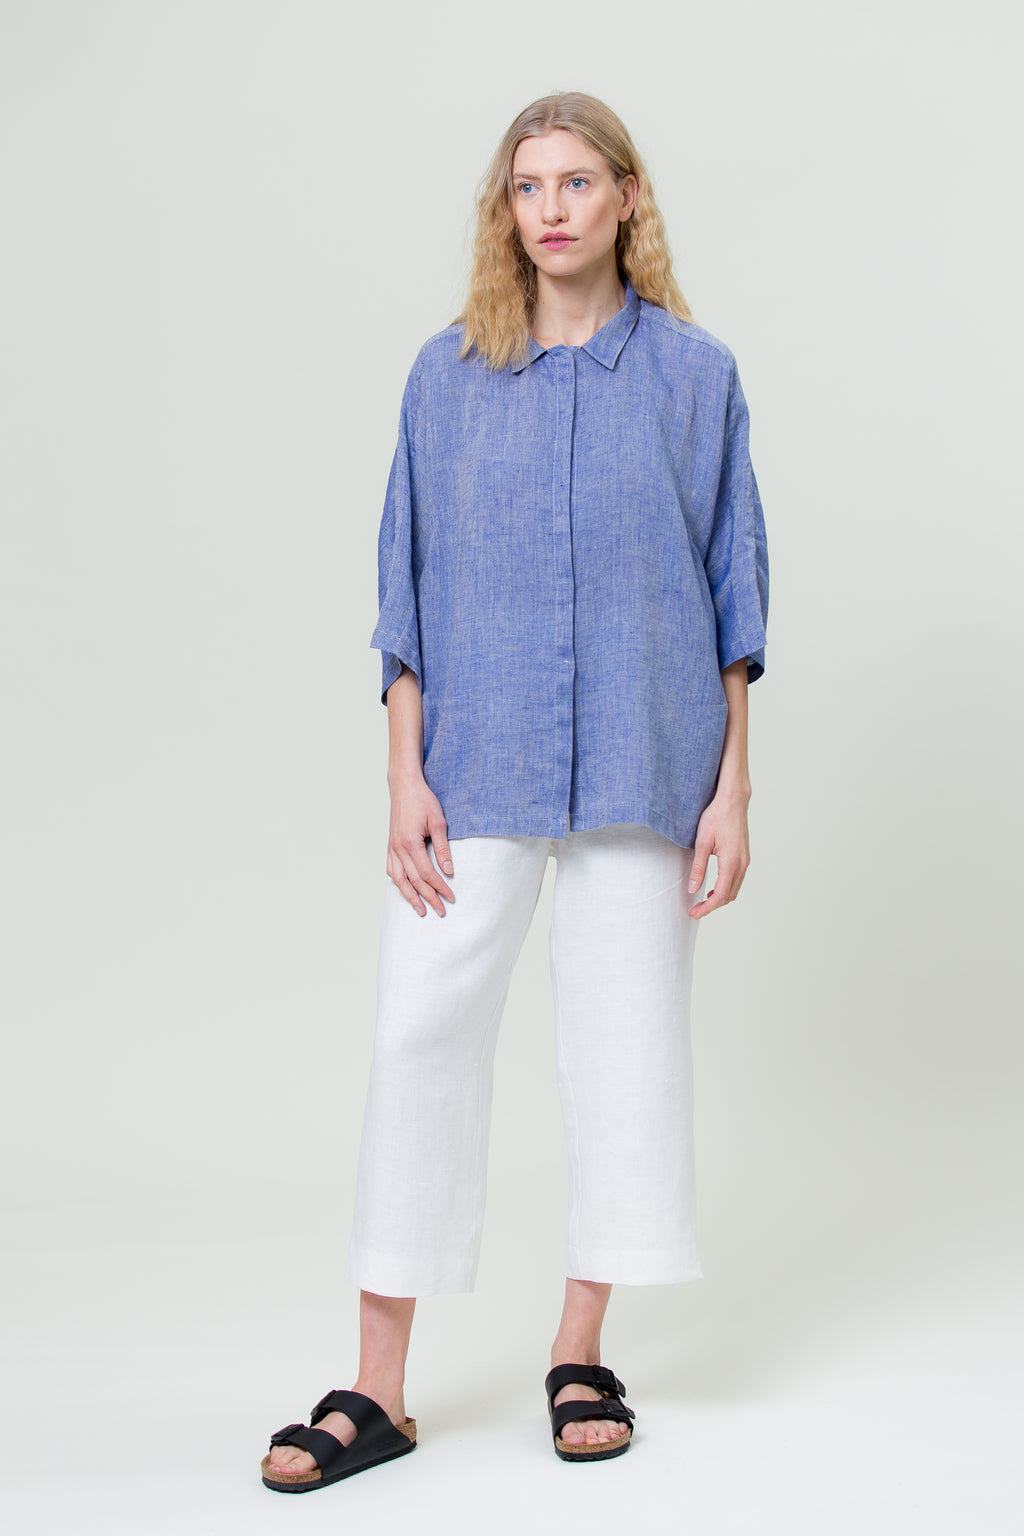 Linen Shirt GINTĖ sunset navy